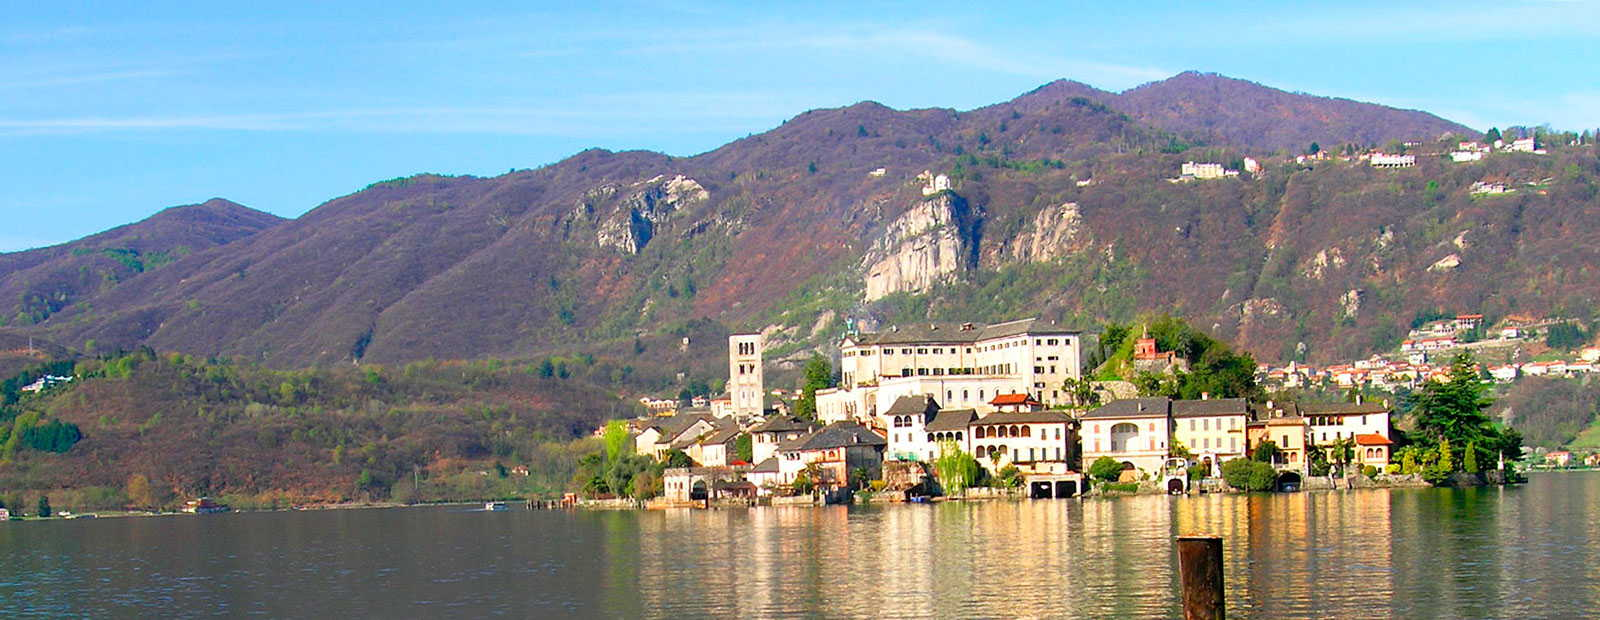 Luxurious holiday homes at Lago di Orta